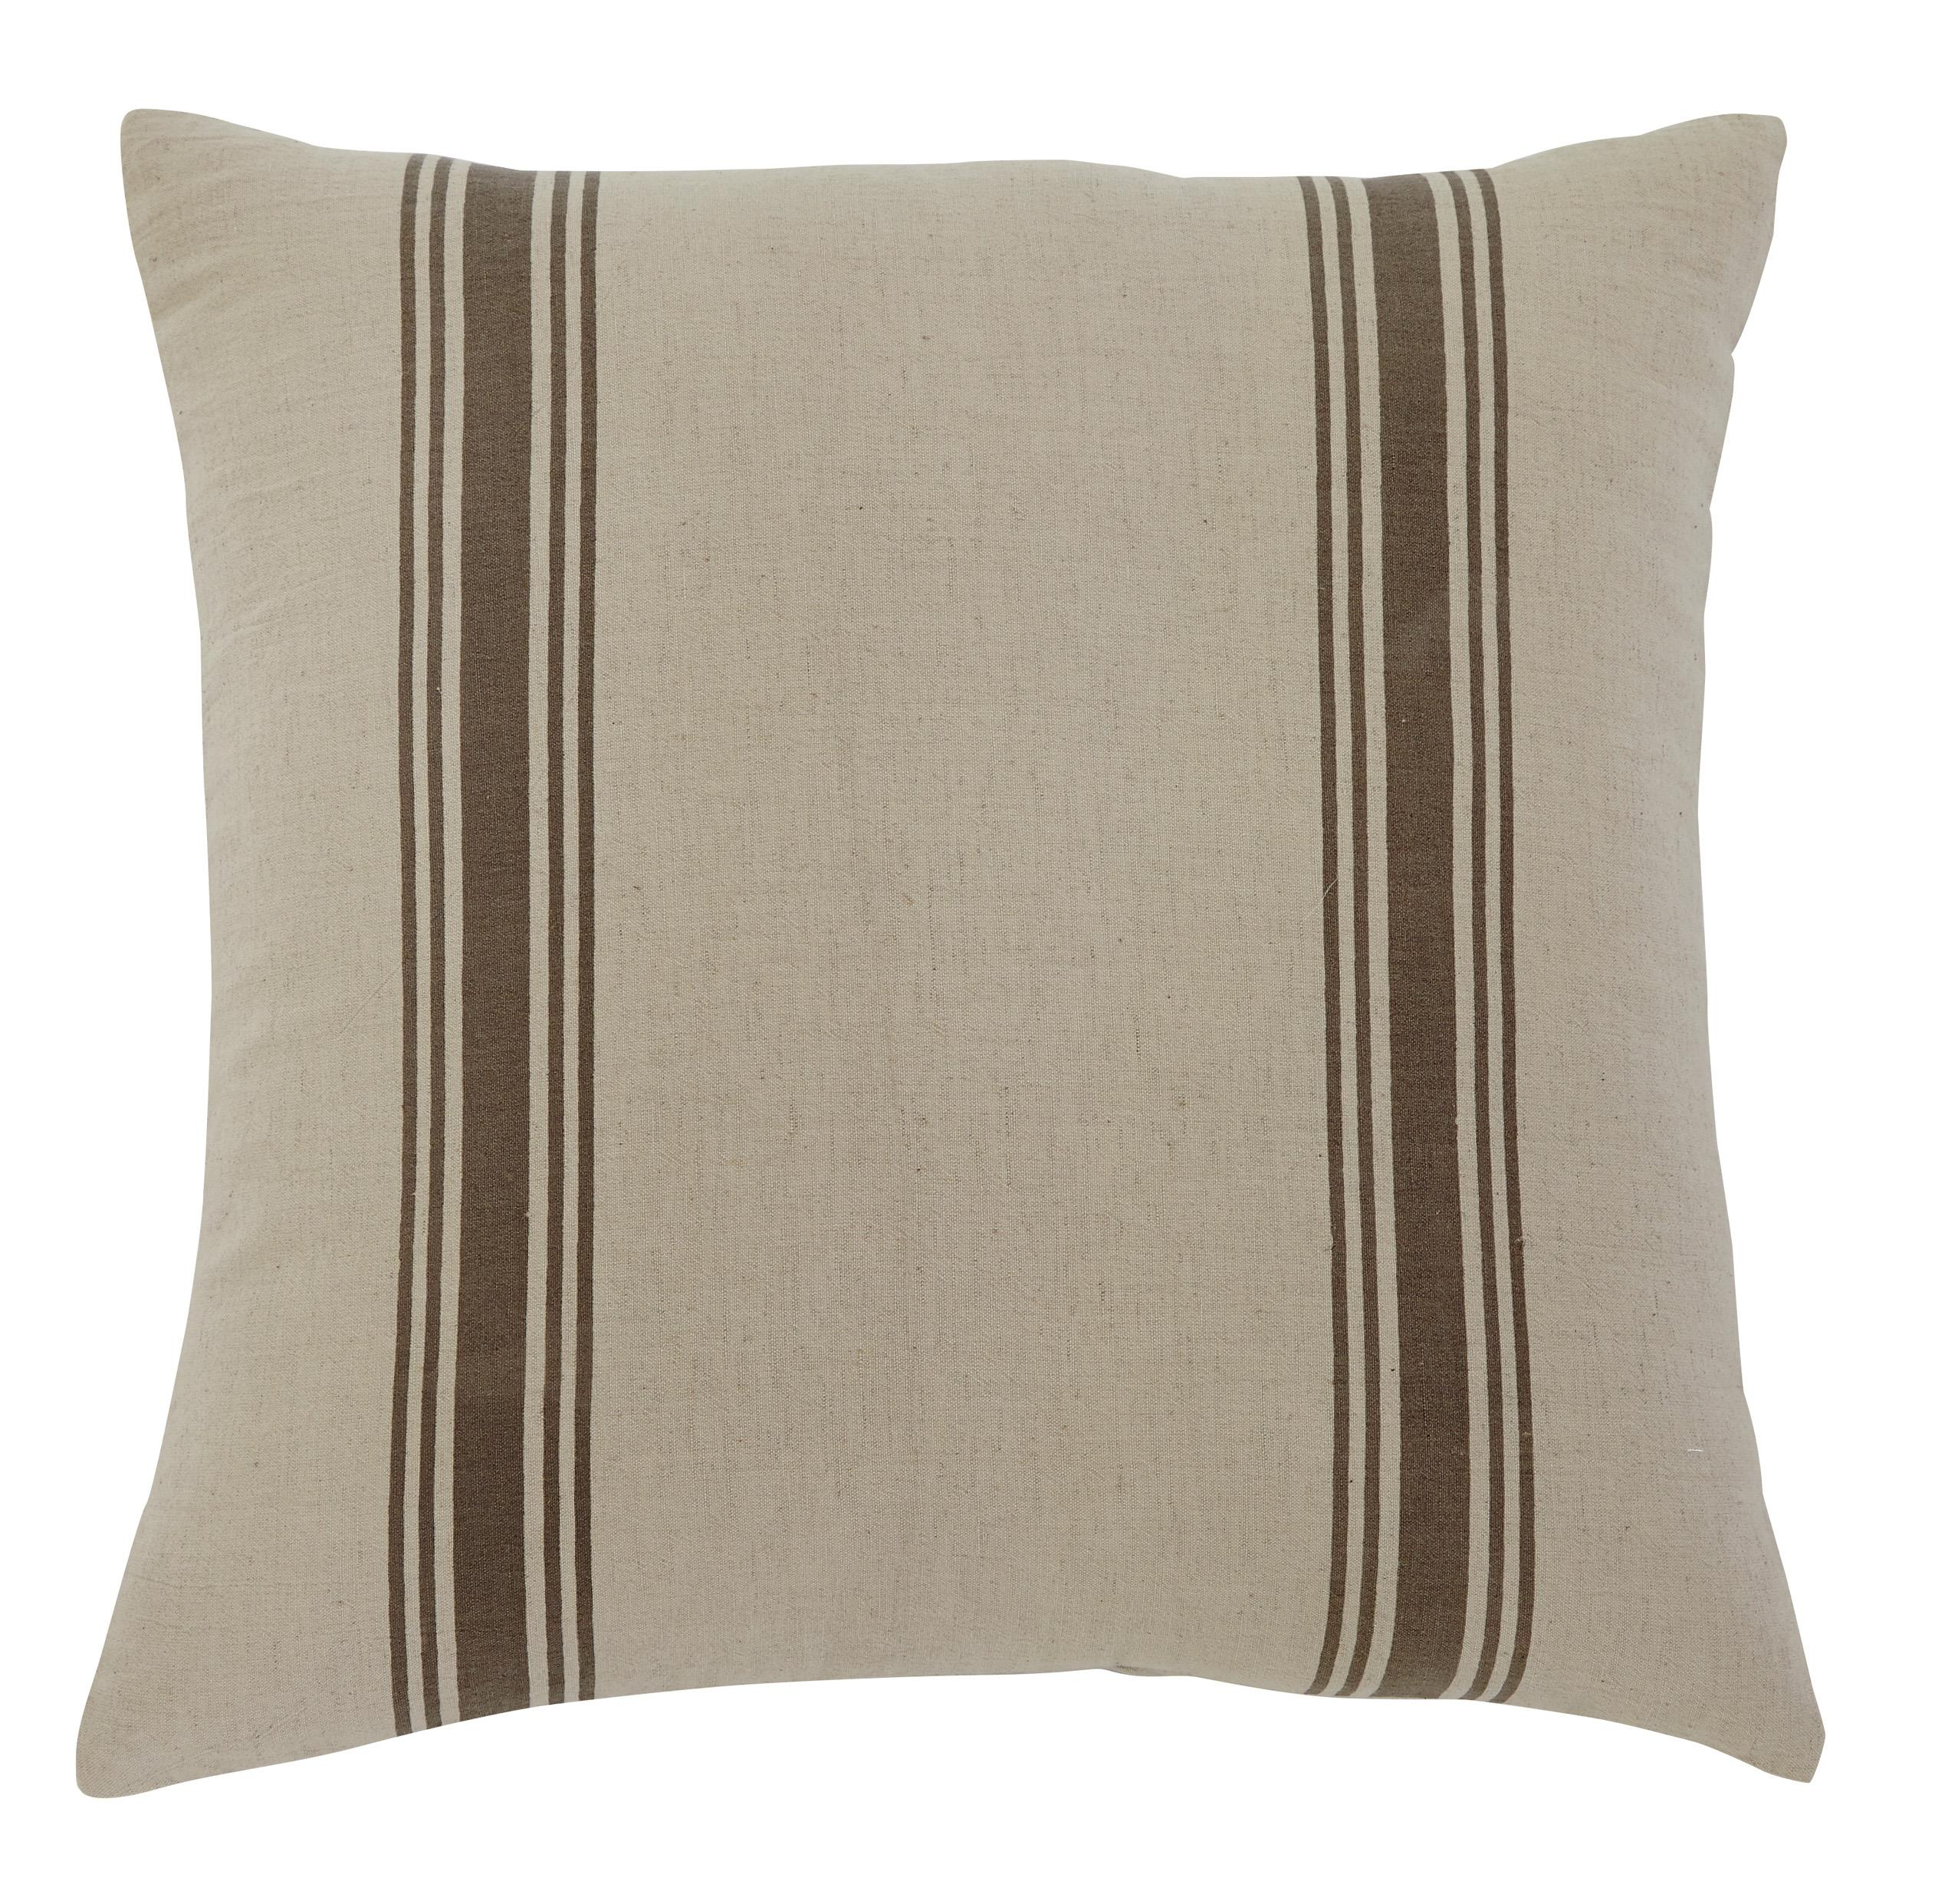 Signature Design by Ashley Pillows Striped - Natural Pillow - Item Number: A1000307P